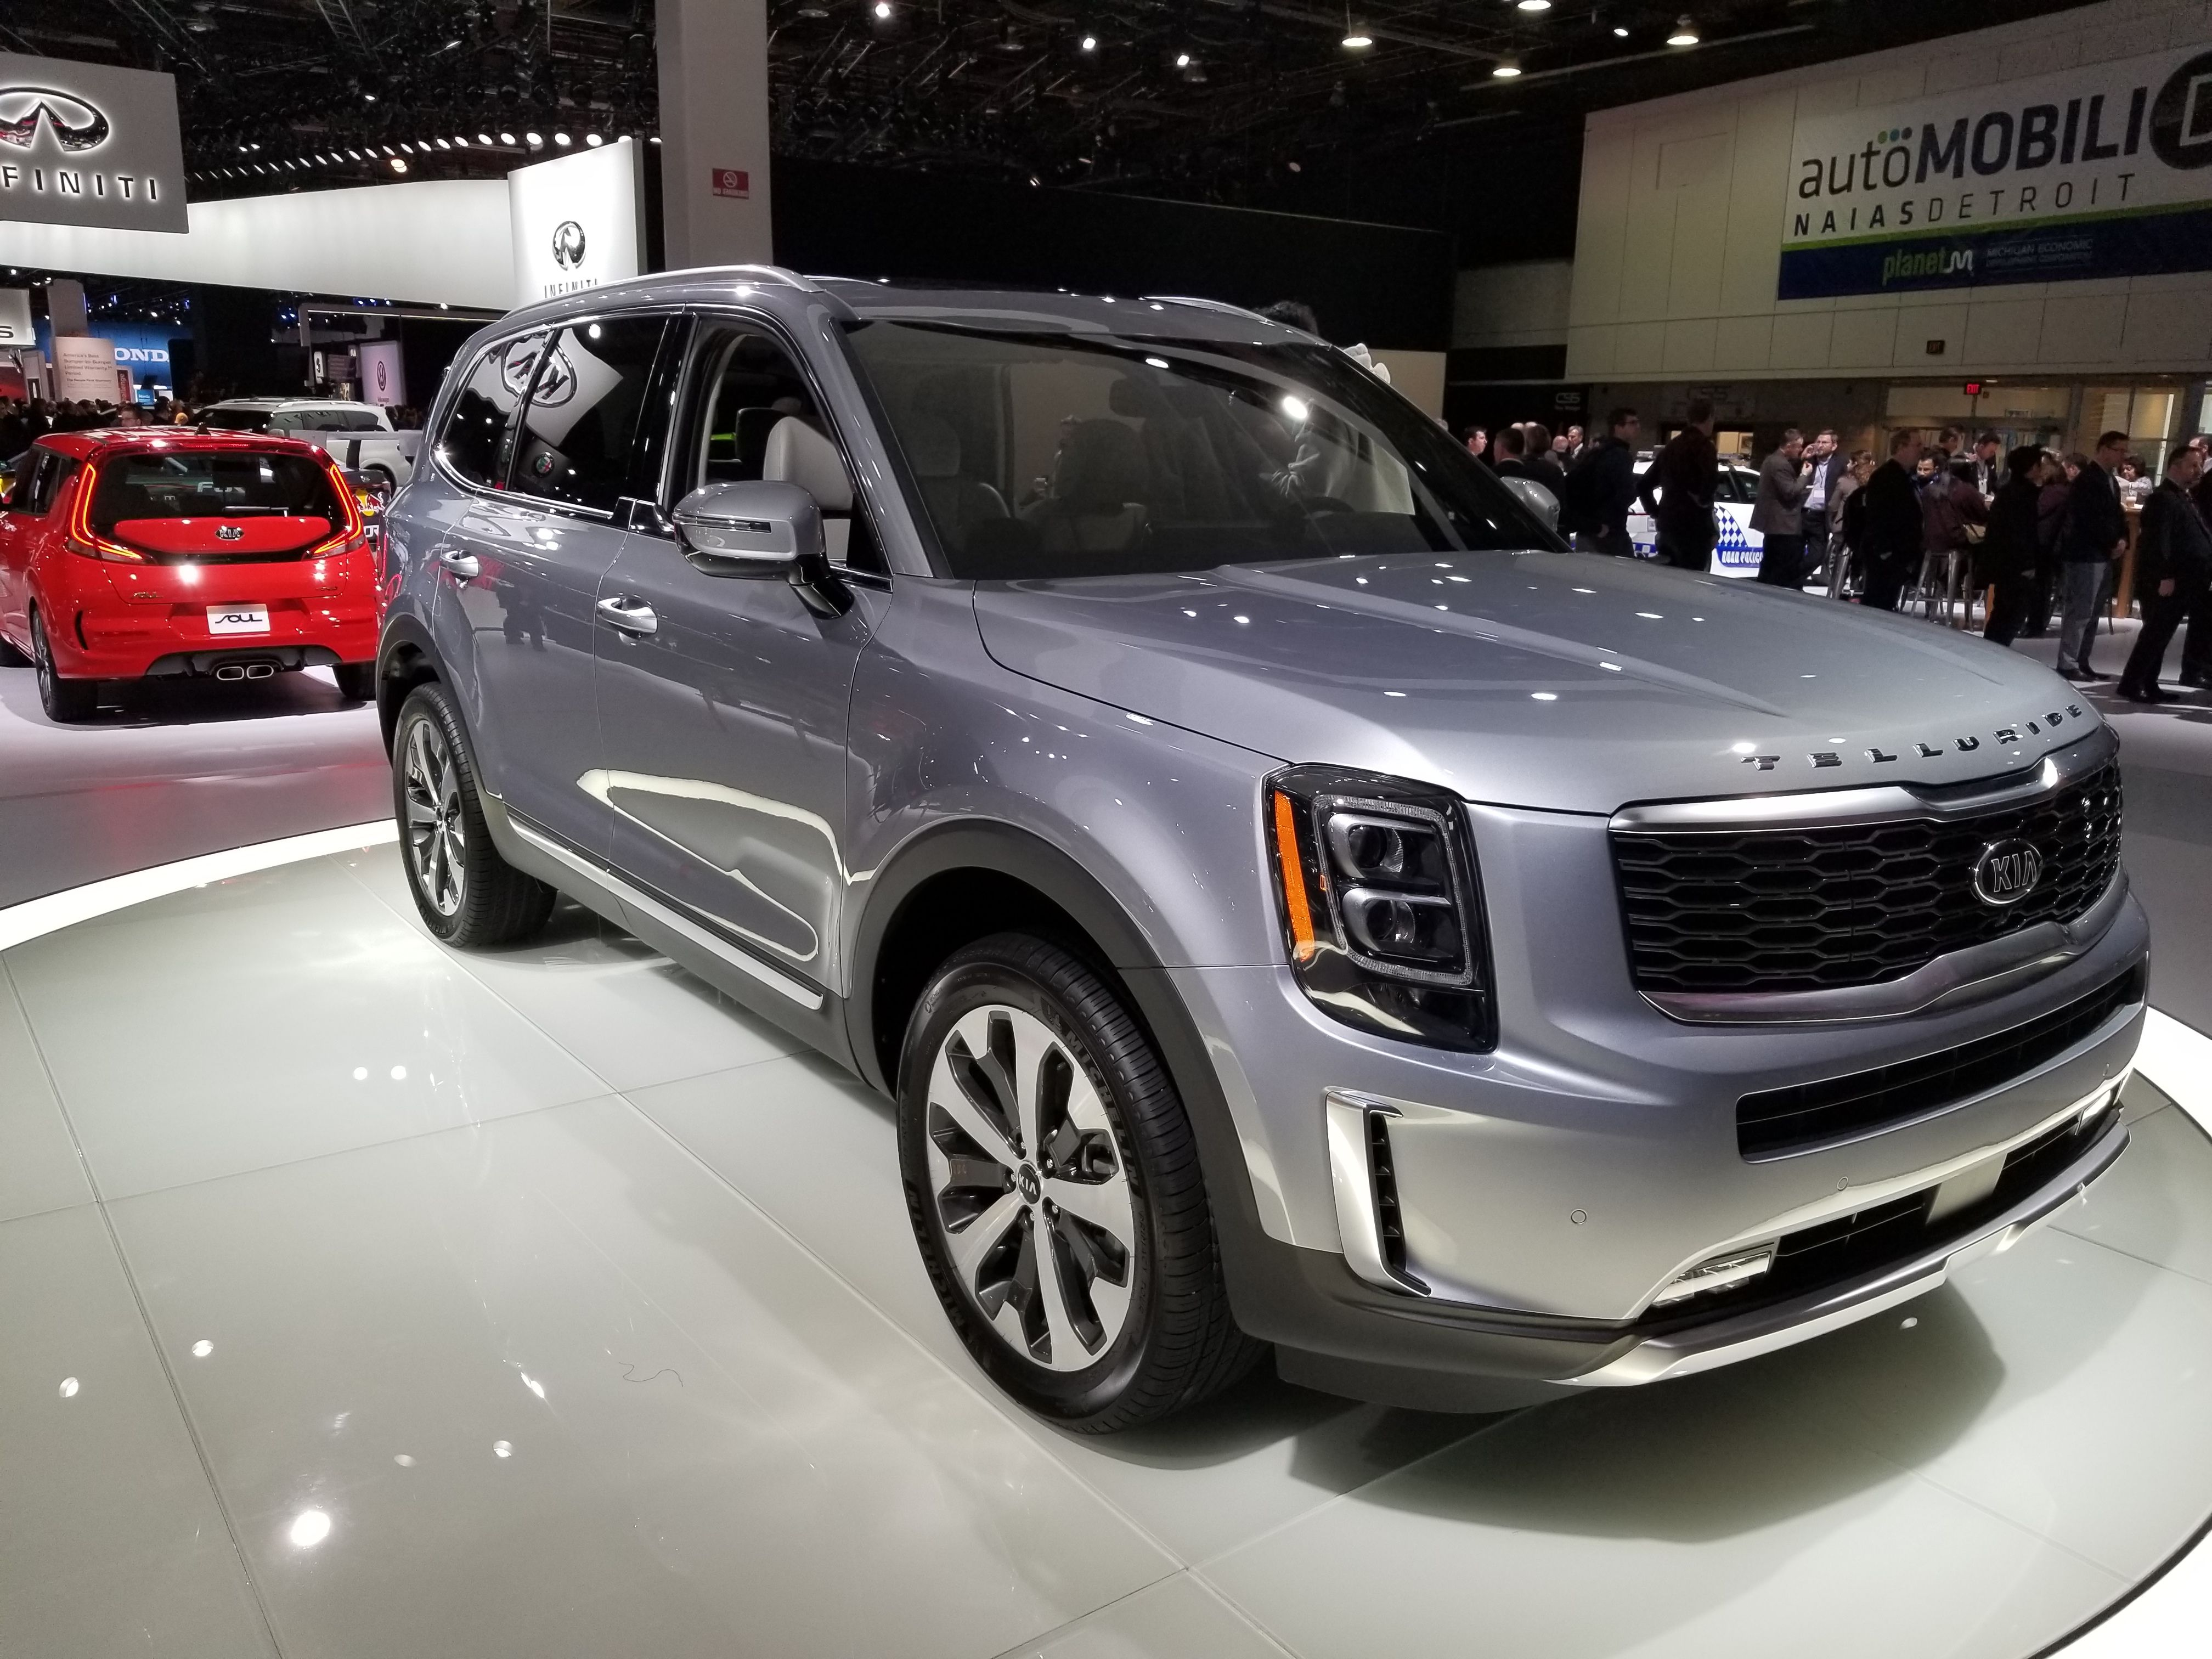 2020 Kia Telluride Finally Shows Its Production Form In